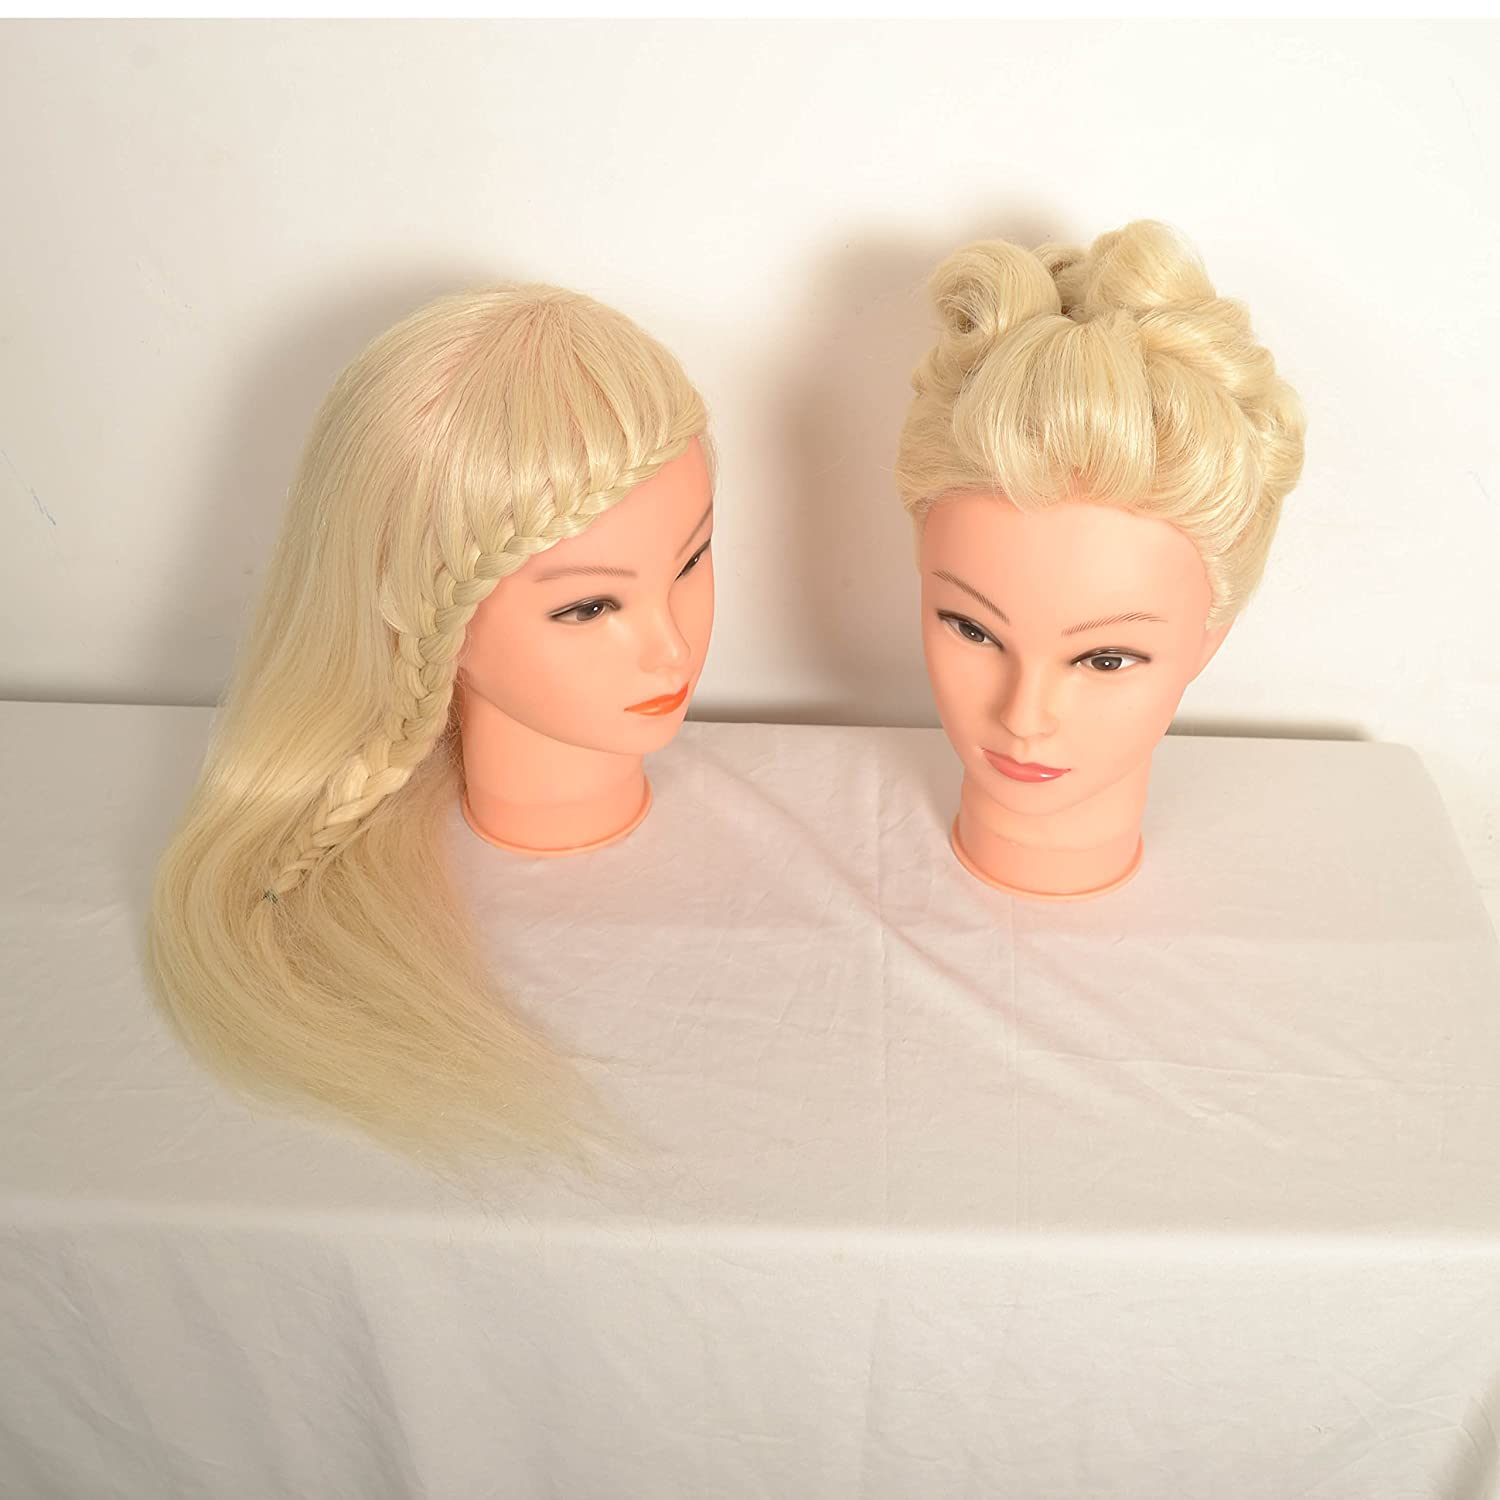 (Li 613) styling Head Doll Kits, cosmetology Mannequin Heads Training Practice Styling Cutting Mannequin Head+clamp elite